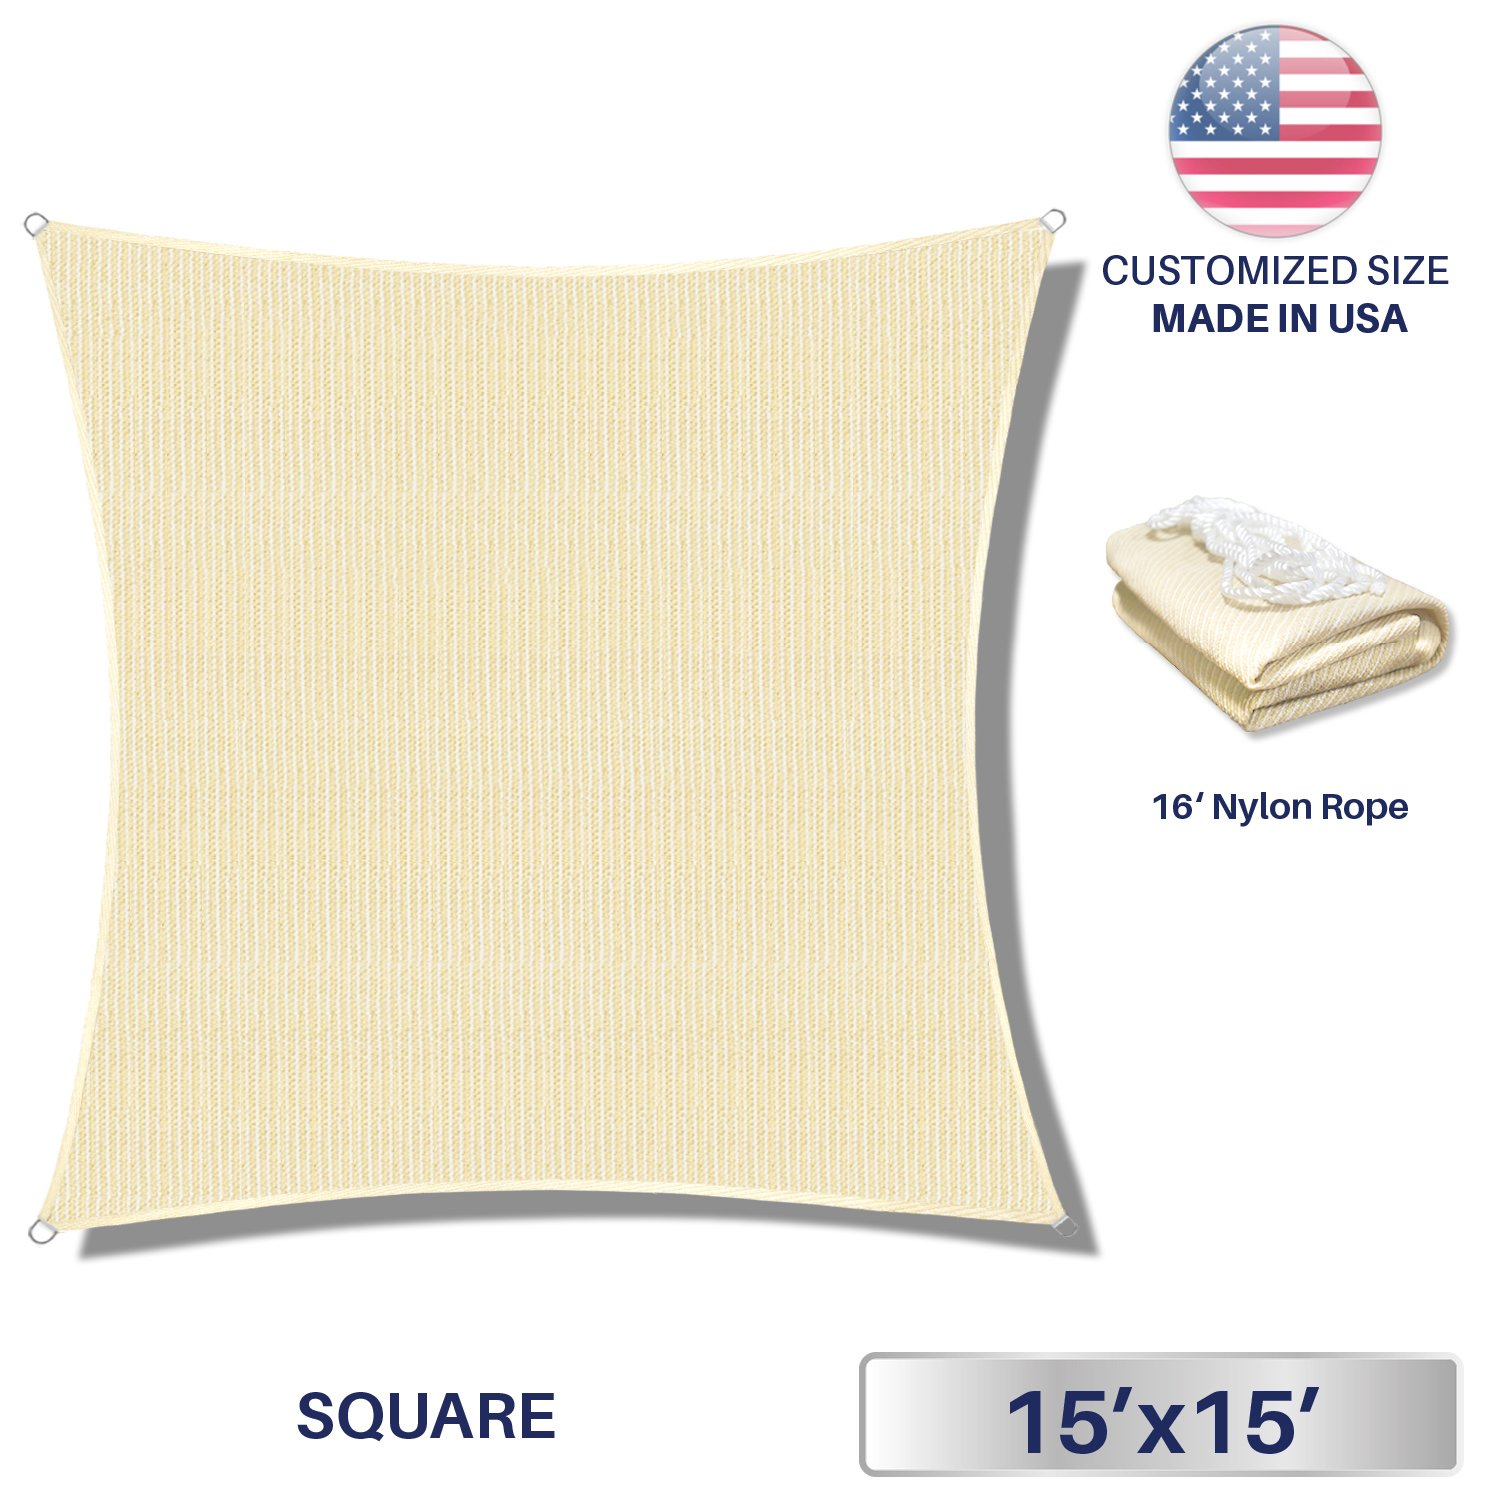 15' x 15' Sun Shade Sail UV Block Fabric Canopy in Beige Sand Square for Patio Garden Customized Size 3 Year Limited Warranty